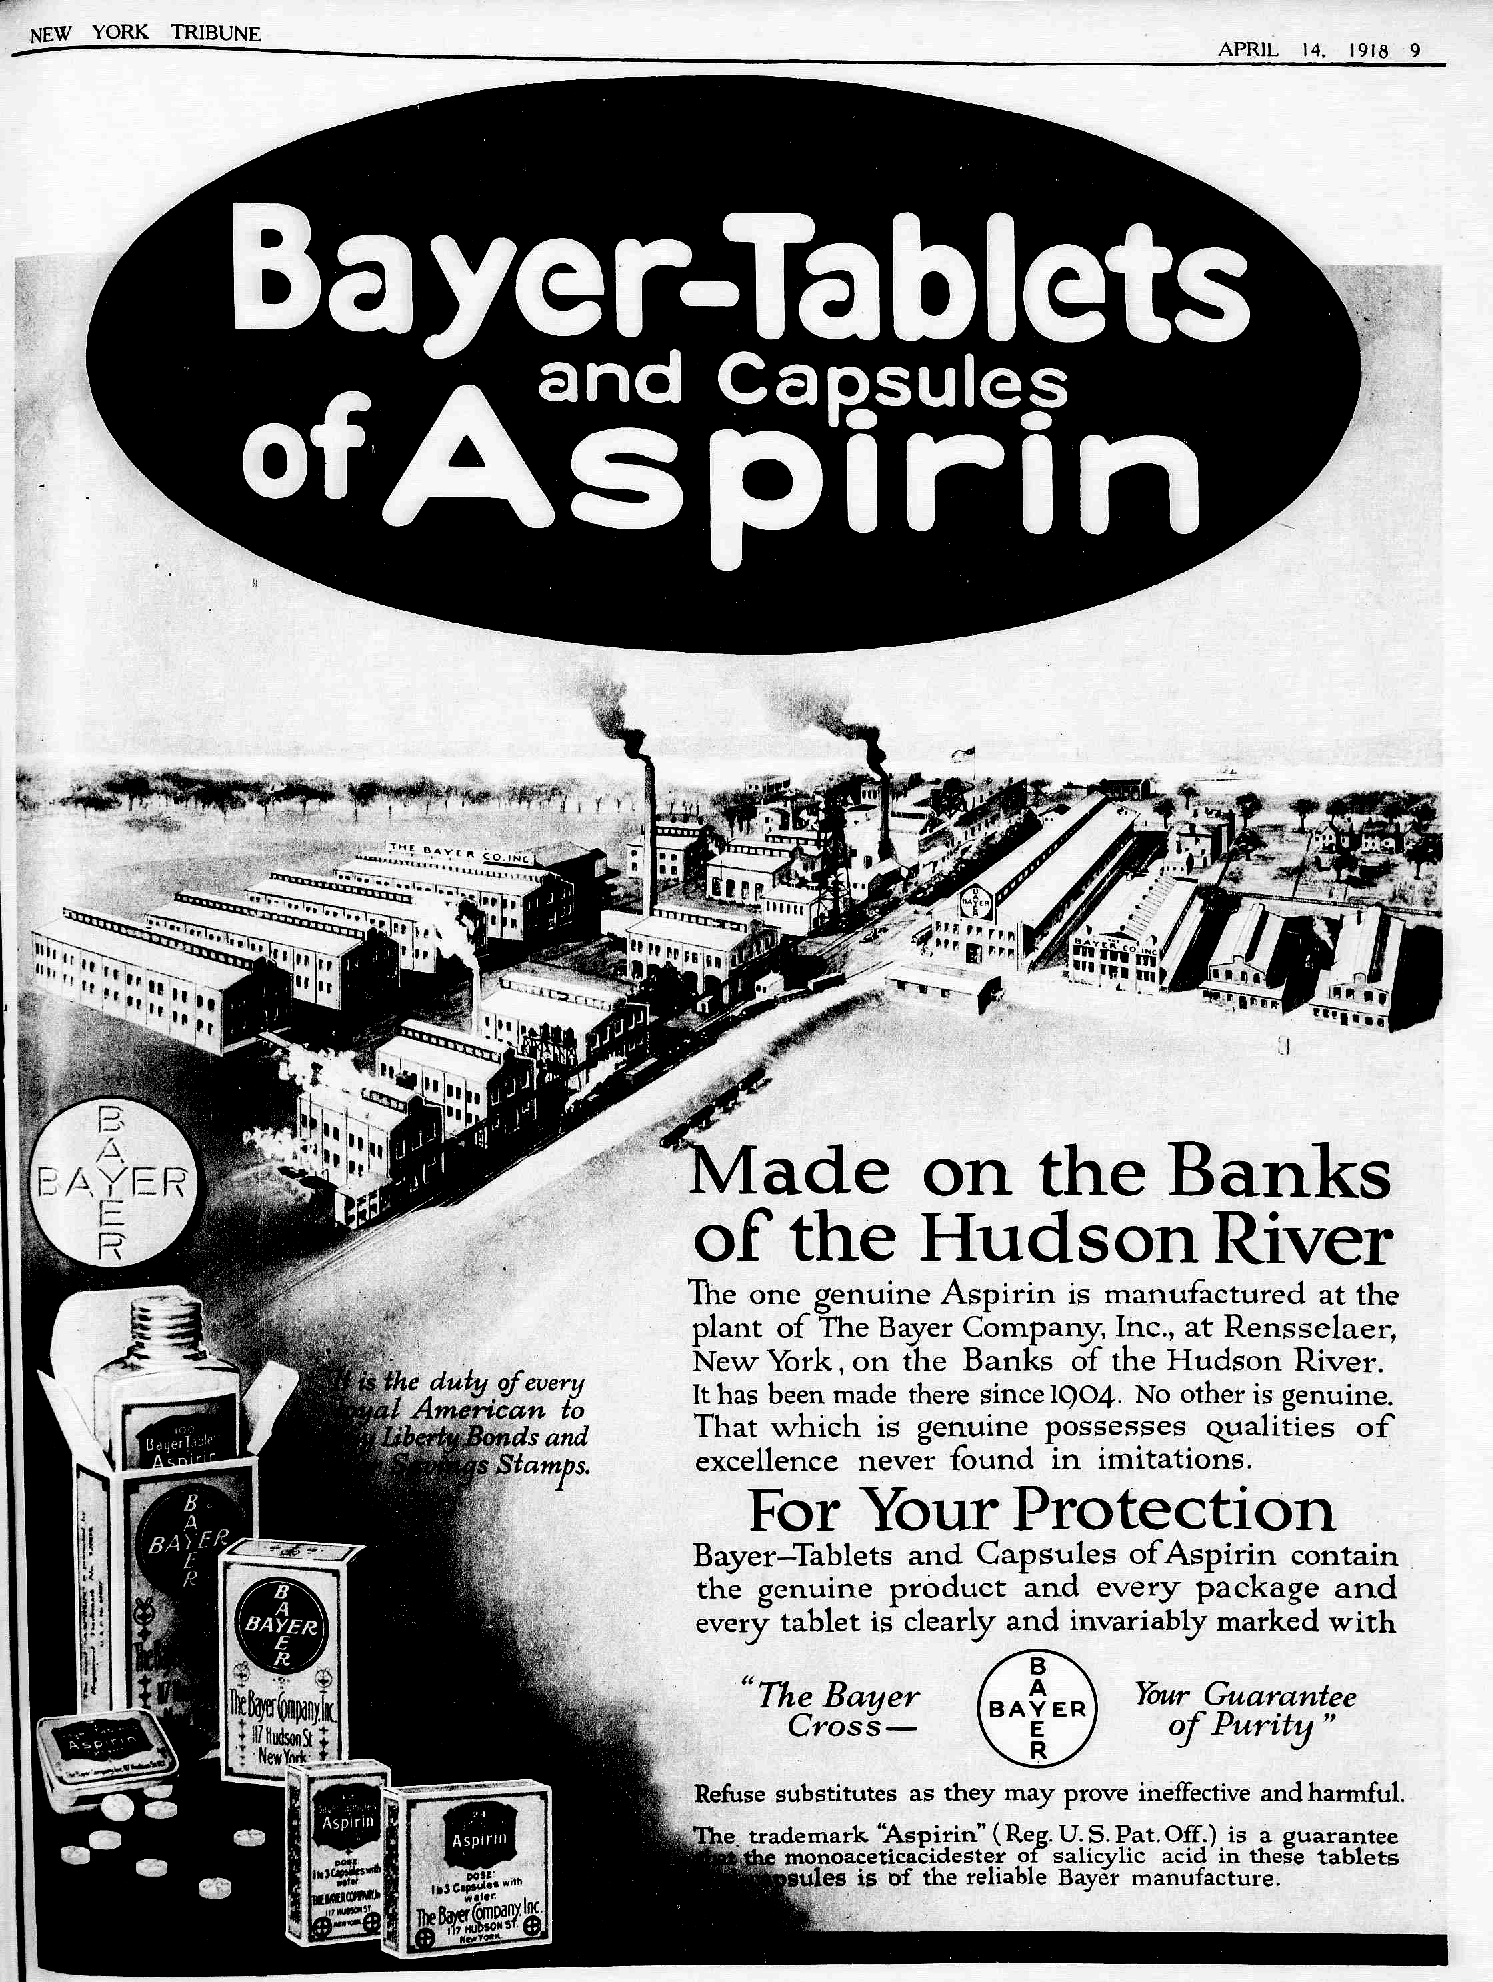 File:Bayer-Tablets of Aspirin ad 1918.png - Wikimedia Commons